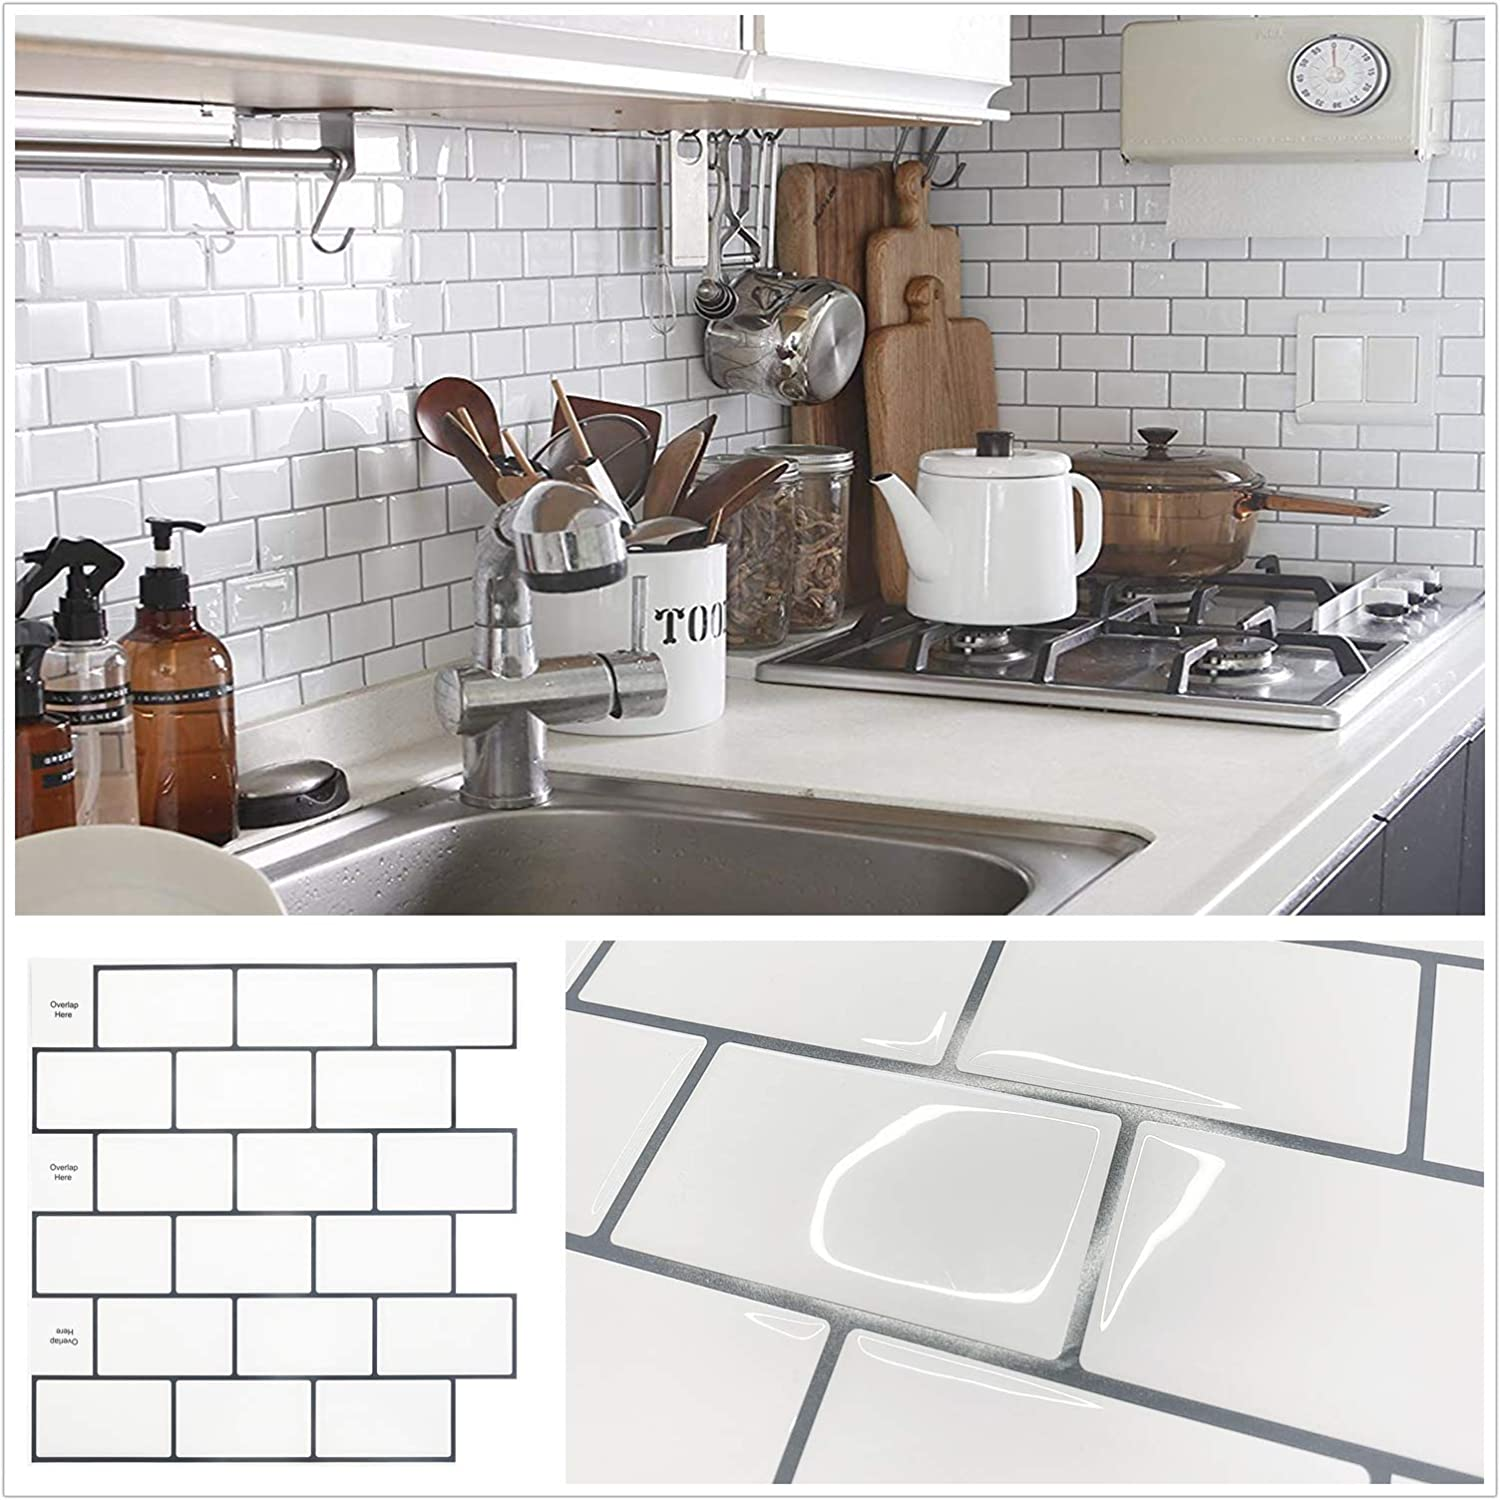 Amazon Com Homeymosaic 10 Sheet Subway Peel And Stick Backsplash Tile For Kitchen 12 X12 3d Wall Vinyl Stickers With Grey Grout White Kitchen Dining